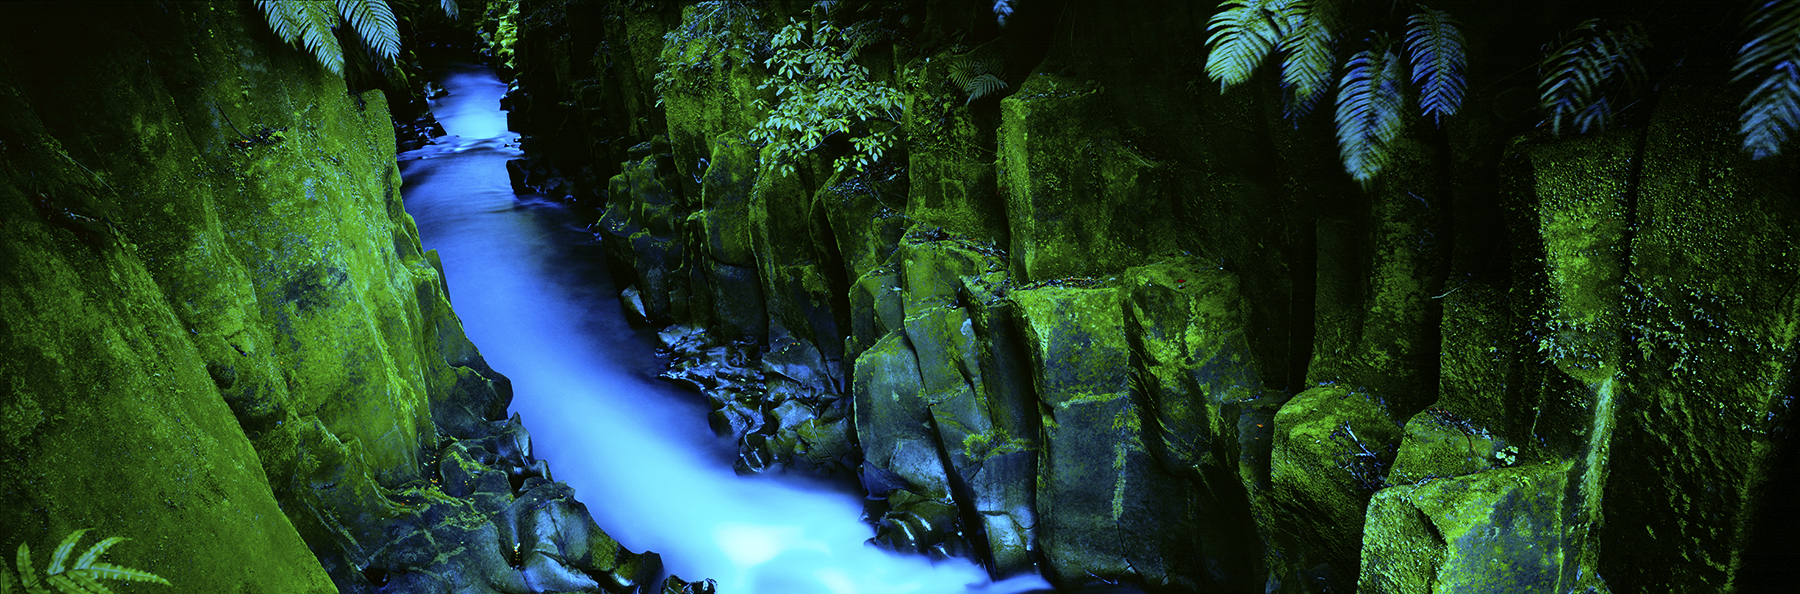 Te Whaiti Nui a Toi Canyon, Wirinaki Forest, New Zealand. A Limited Edition Fine Art Landscape Photograph by Richard Hume